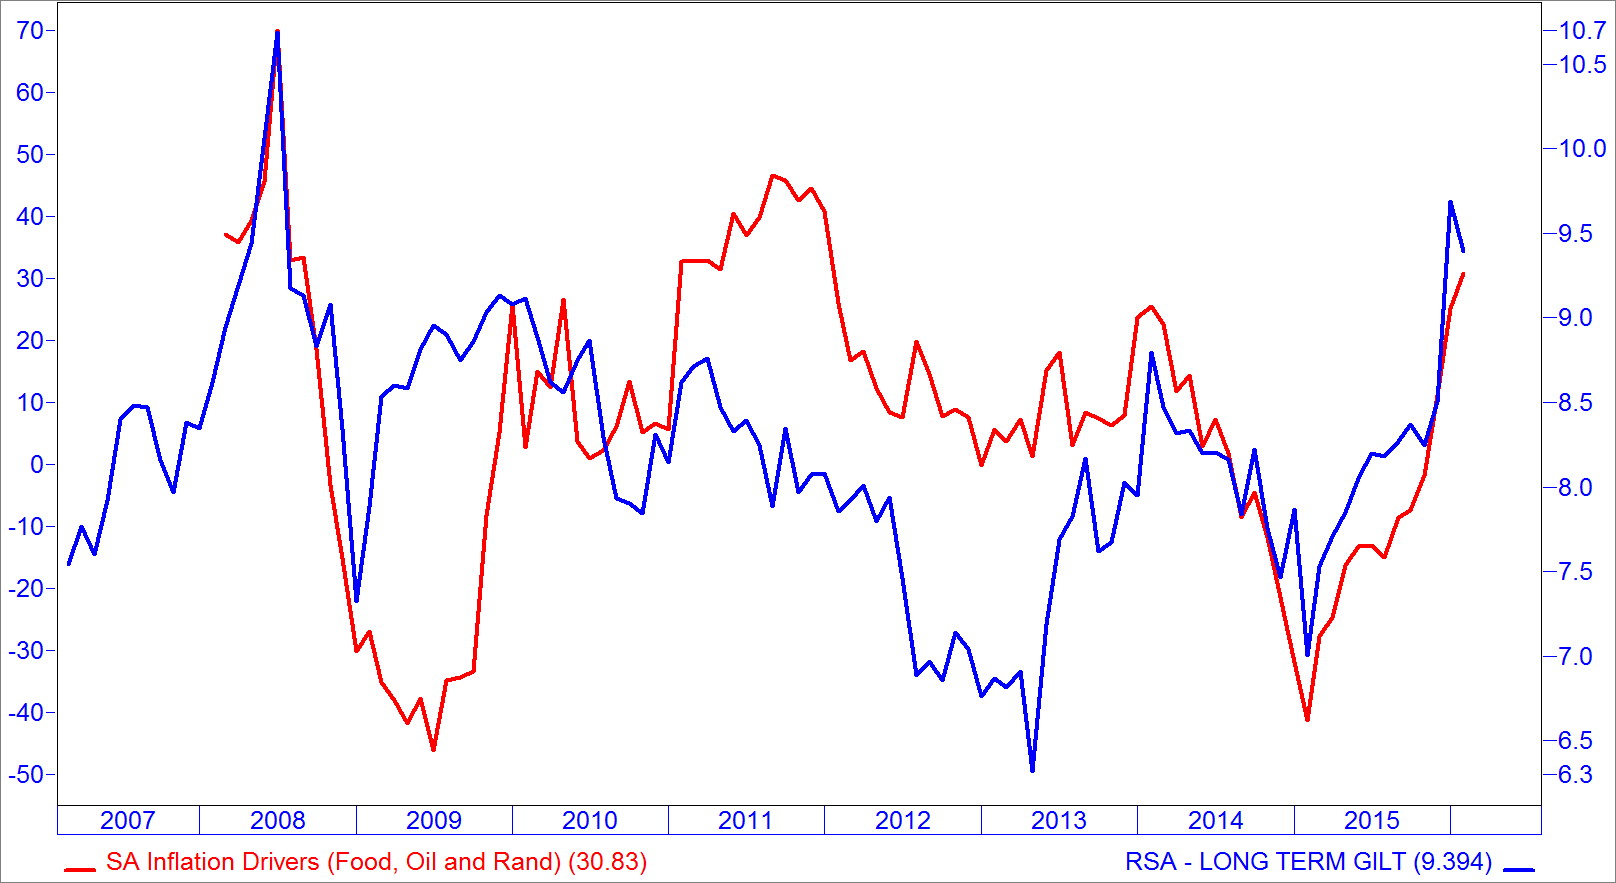 chart-7-sa-inflation-well-correlated-to-bond-yields